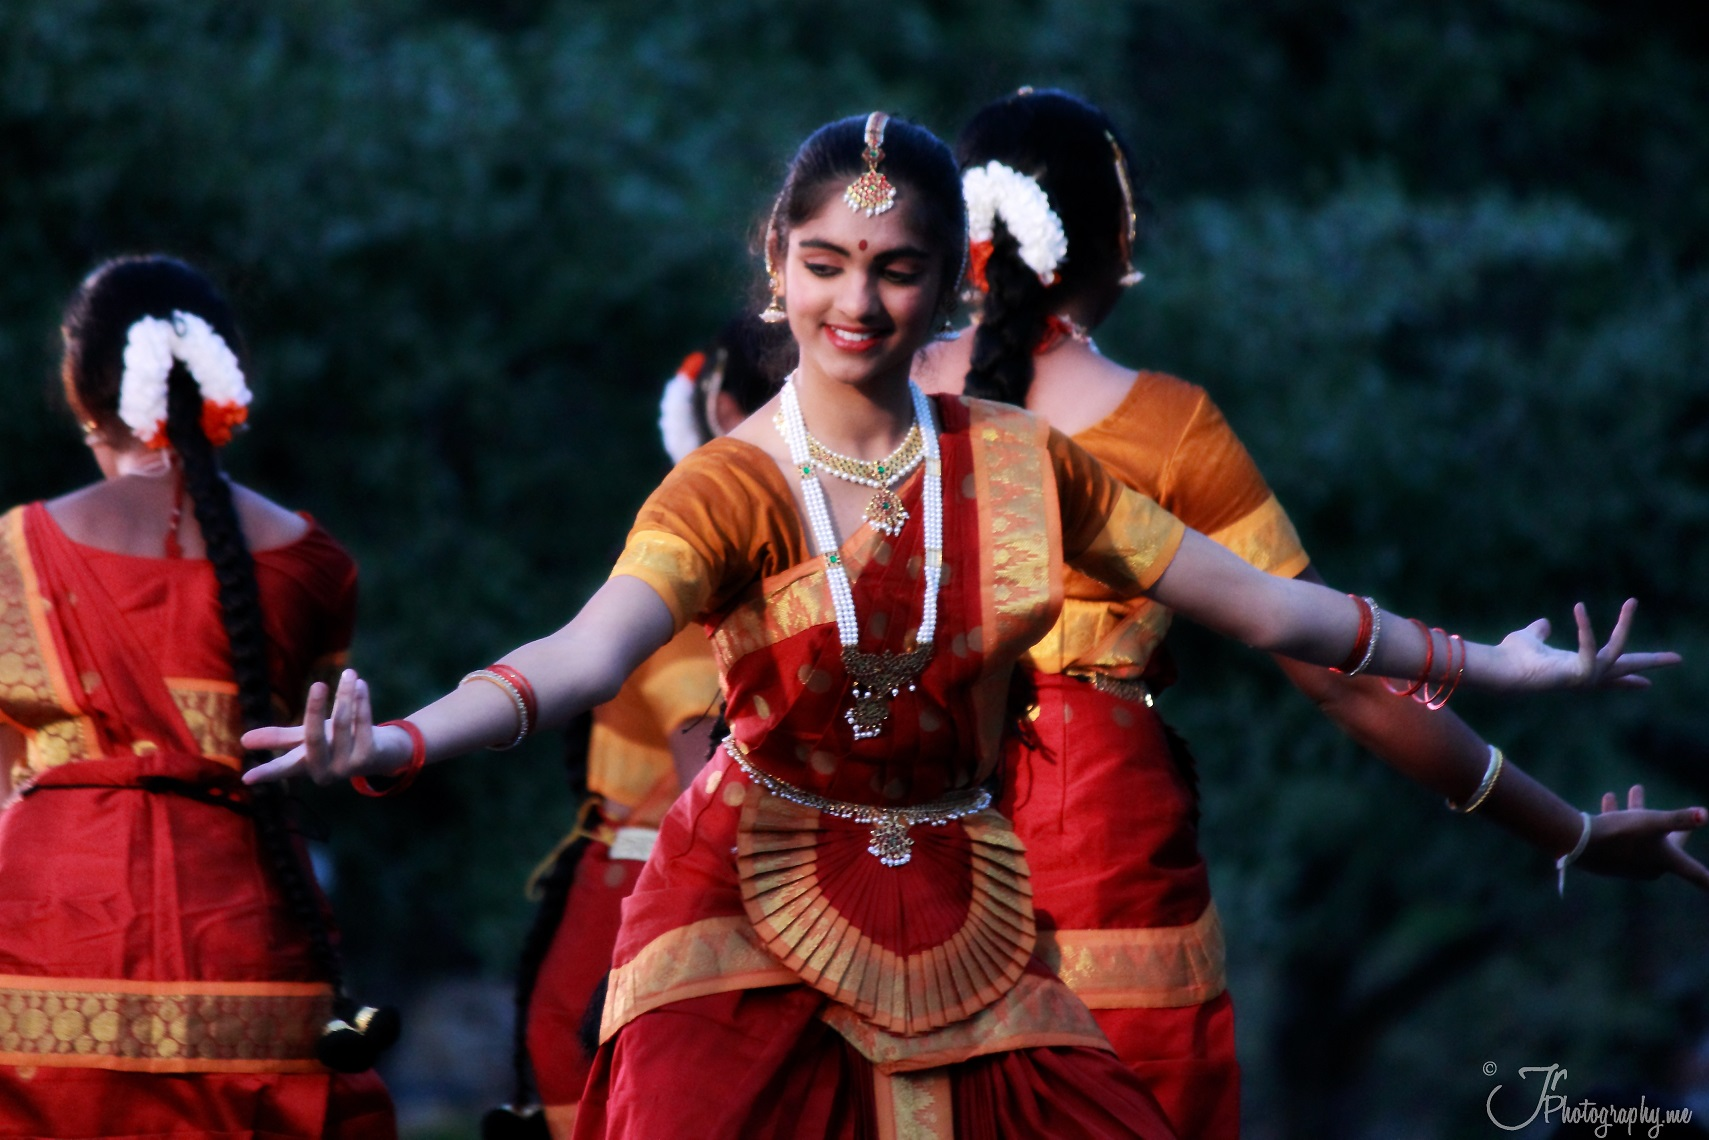 Dipavali Hindu festival and dance